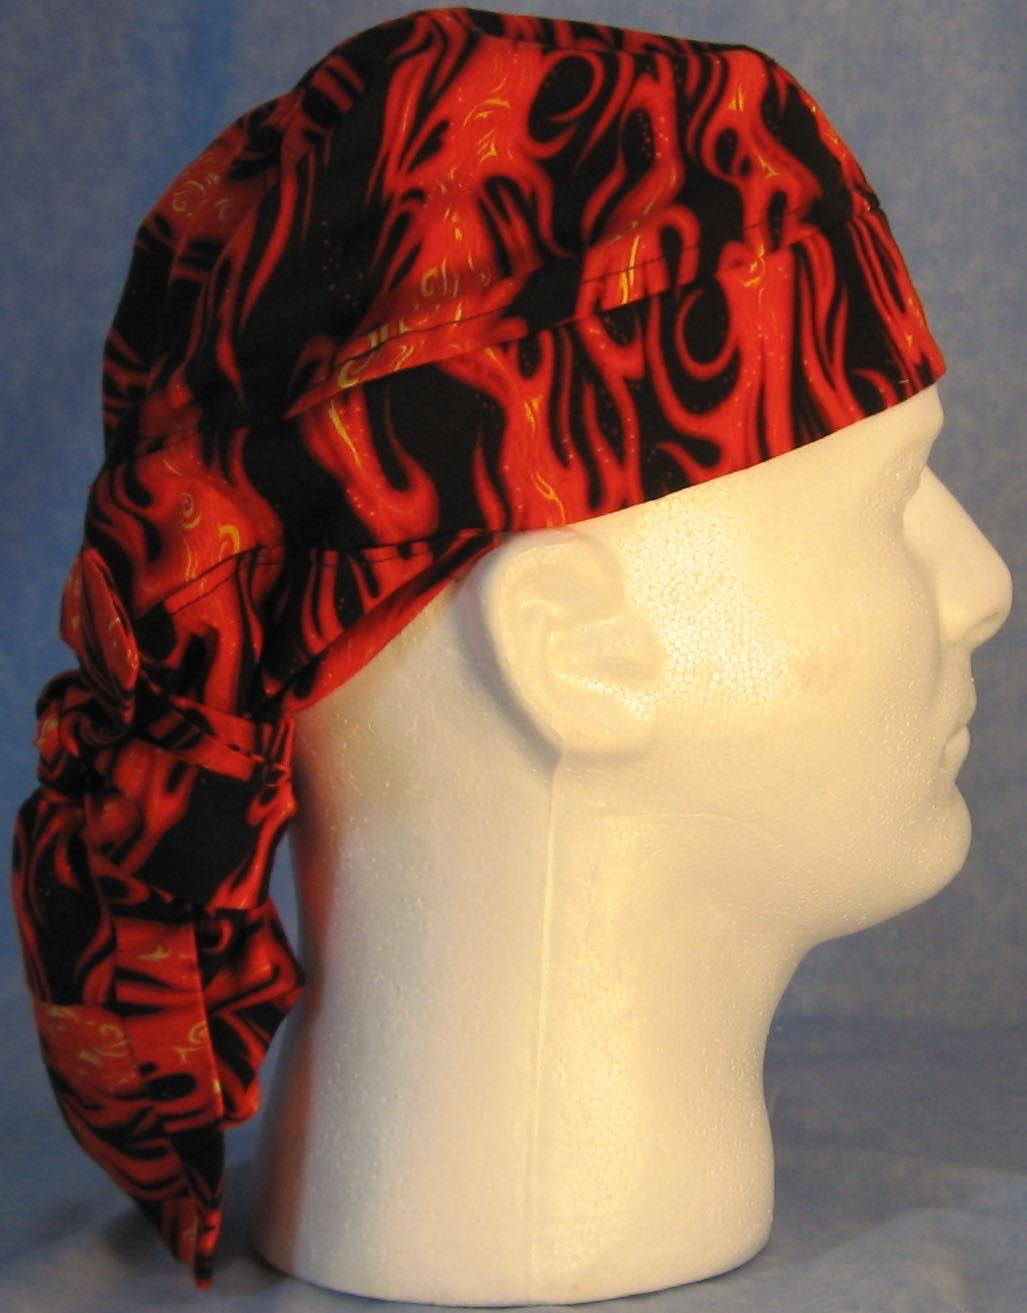 Hair Bag Do Rag in Red Orange Flames - Adult M-XL